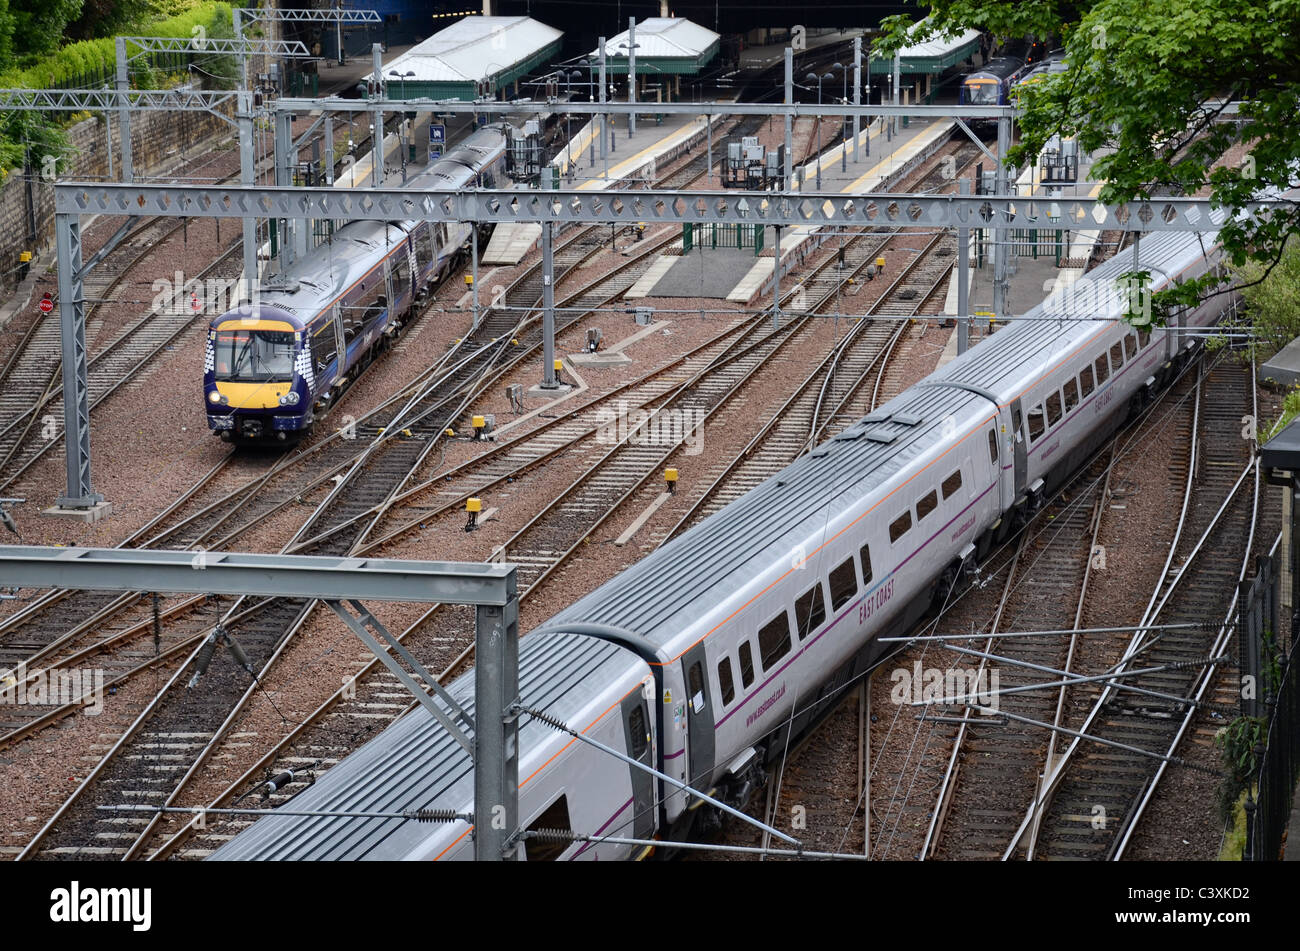 An East Coast train arrives at Edinburgh Waverley as a Scotrail train departs. - Stock Image